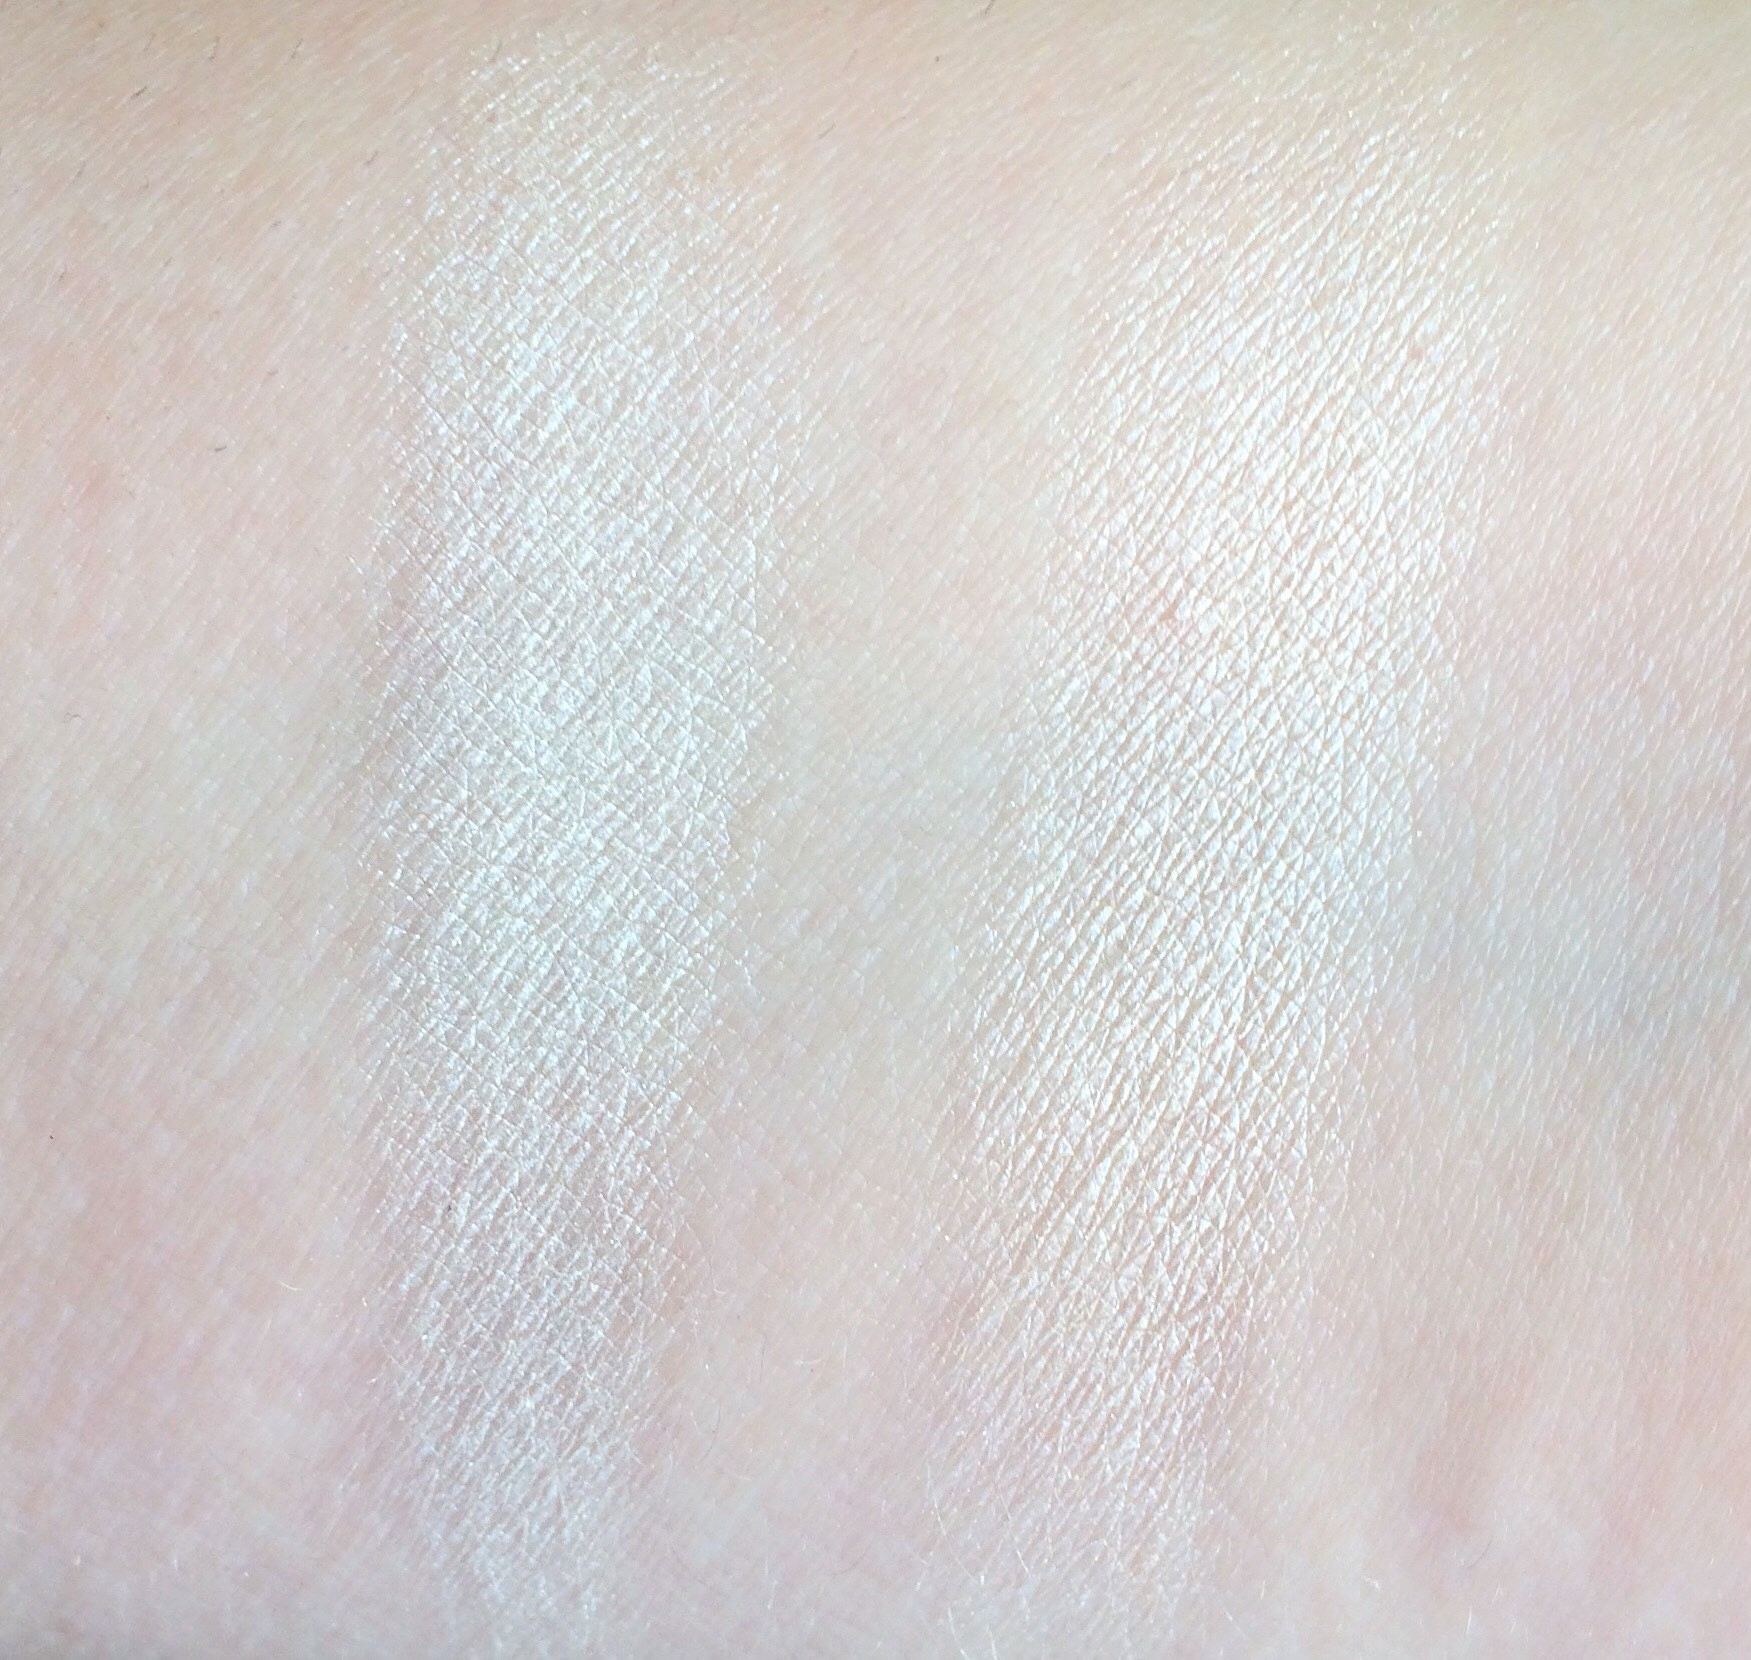 Wet 'n' Wild Walking On Eggshells Eyeshadow Review Swatch and Dupe (0).jpg